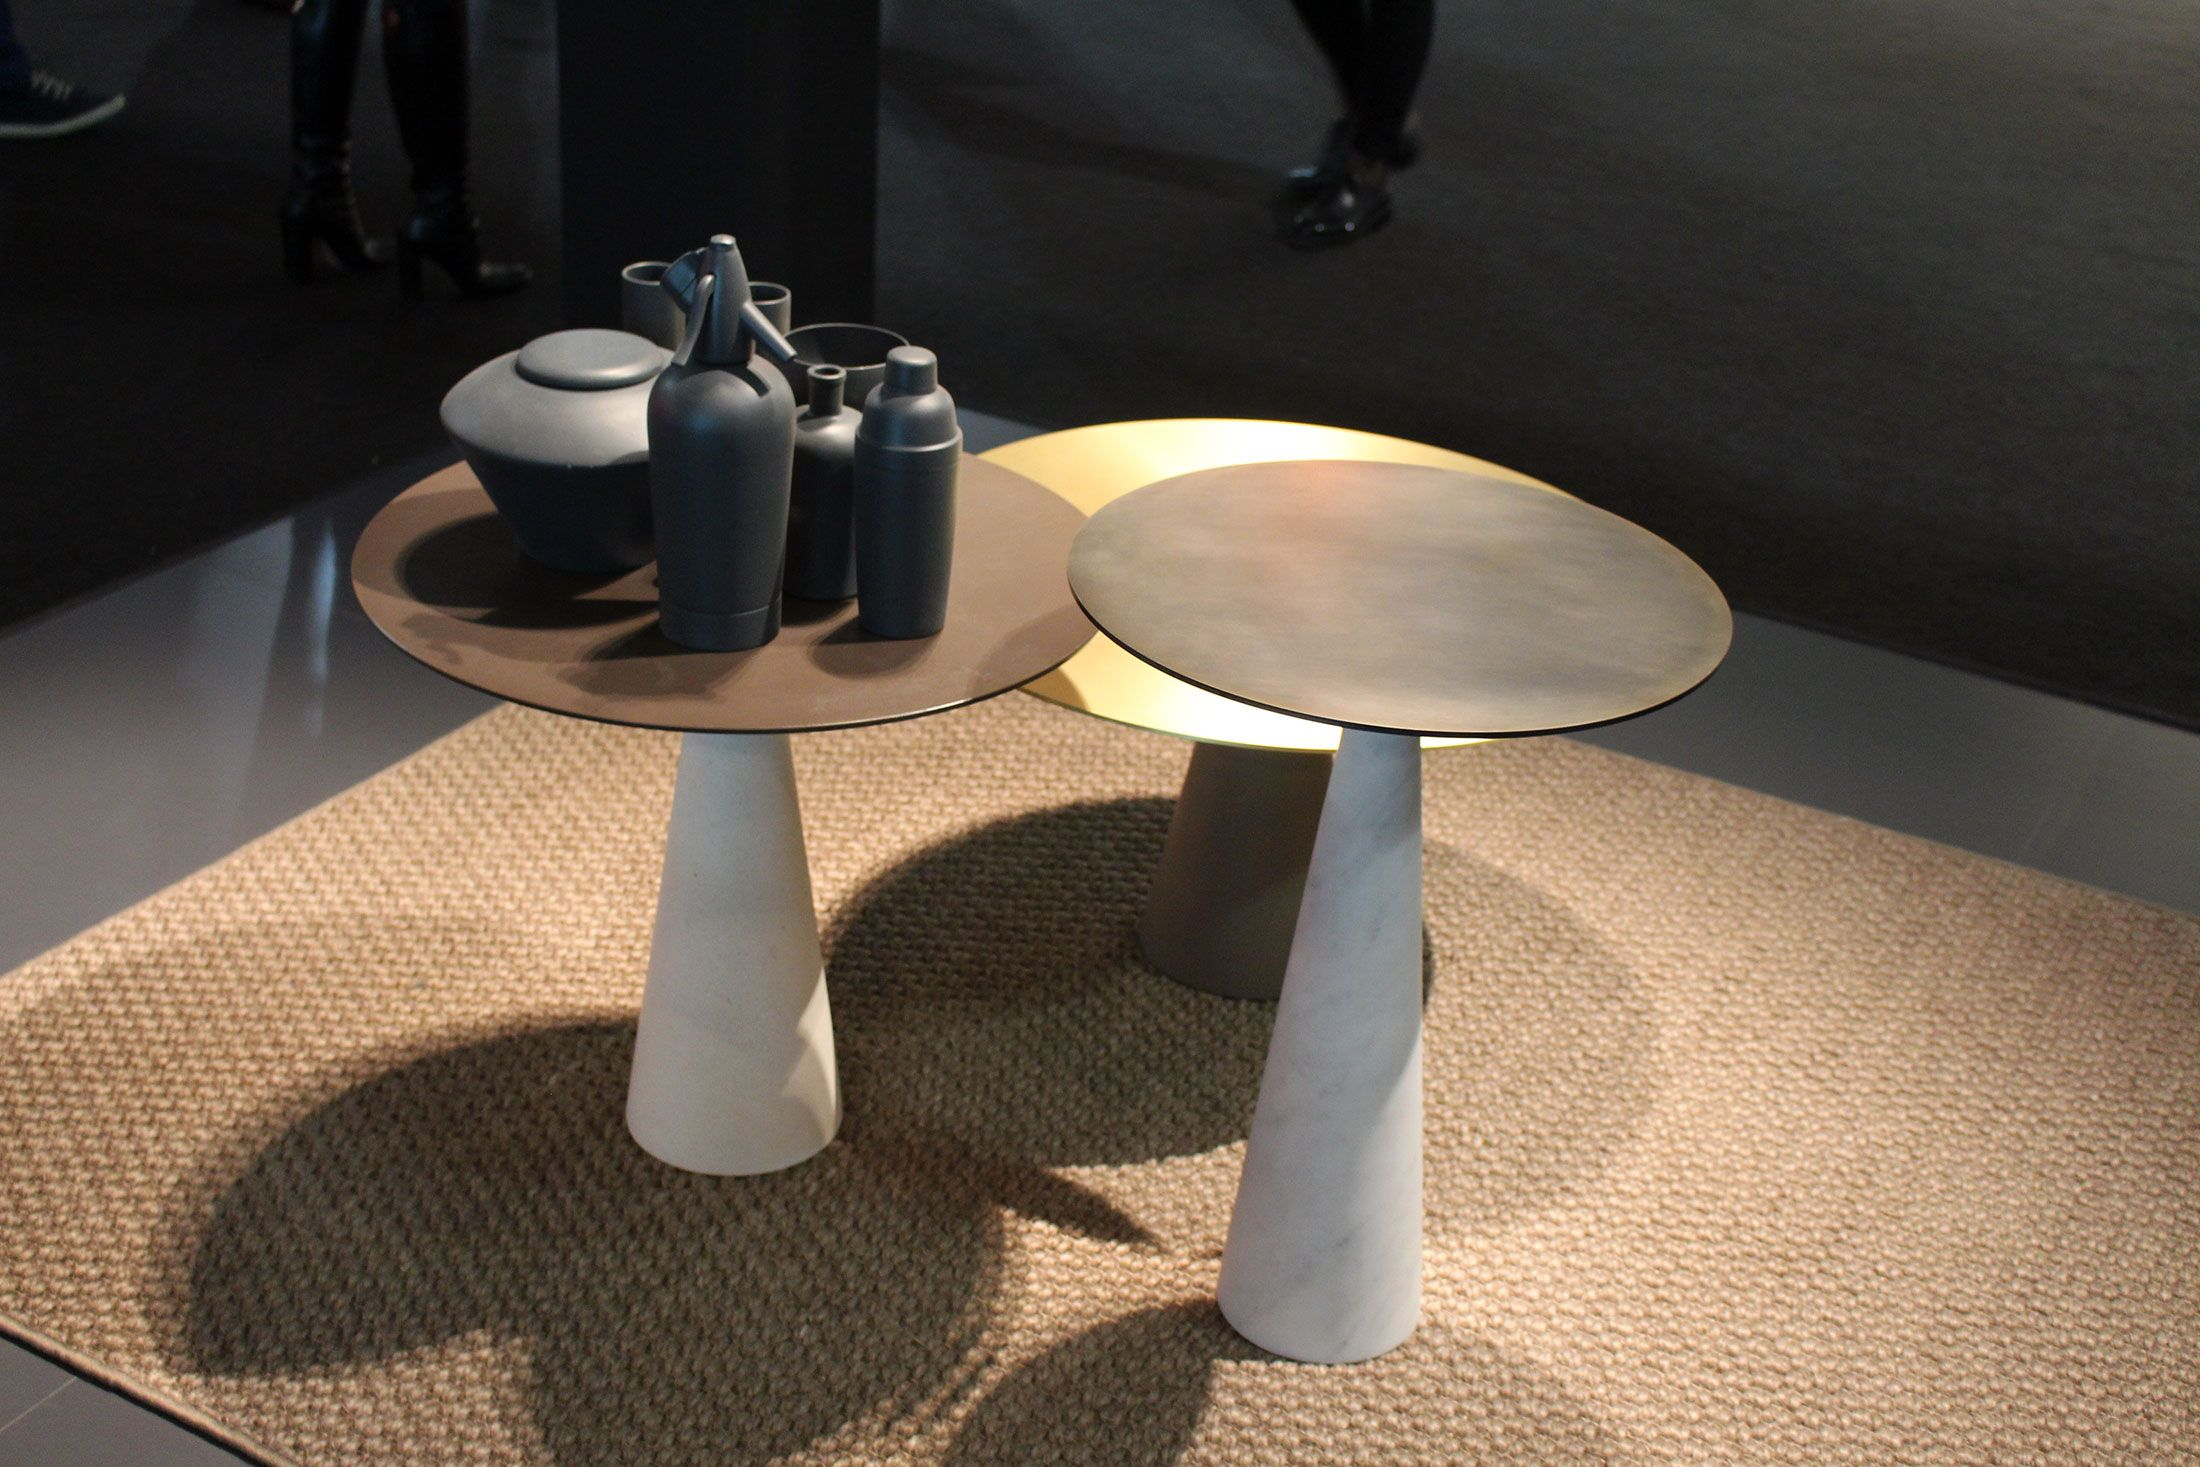 Luxury Neautra Products Atalone Del Mobile Salone2016 Bathrooms